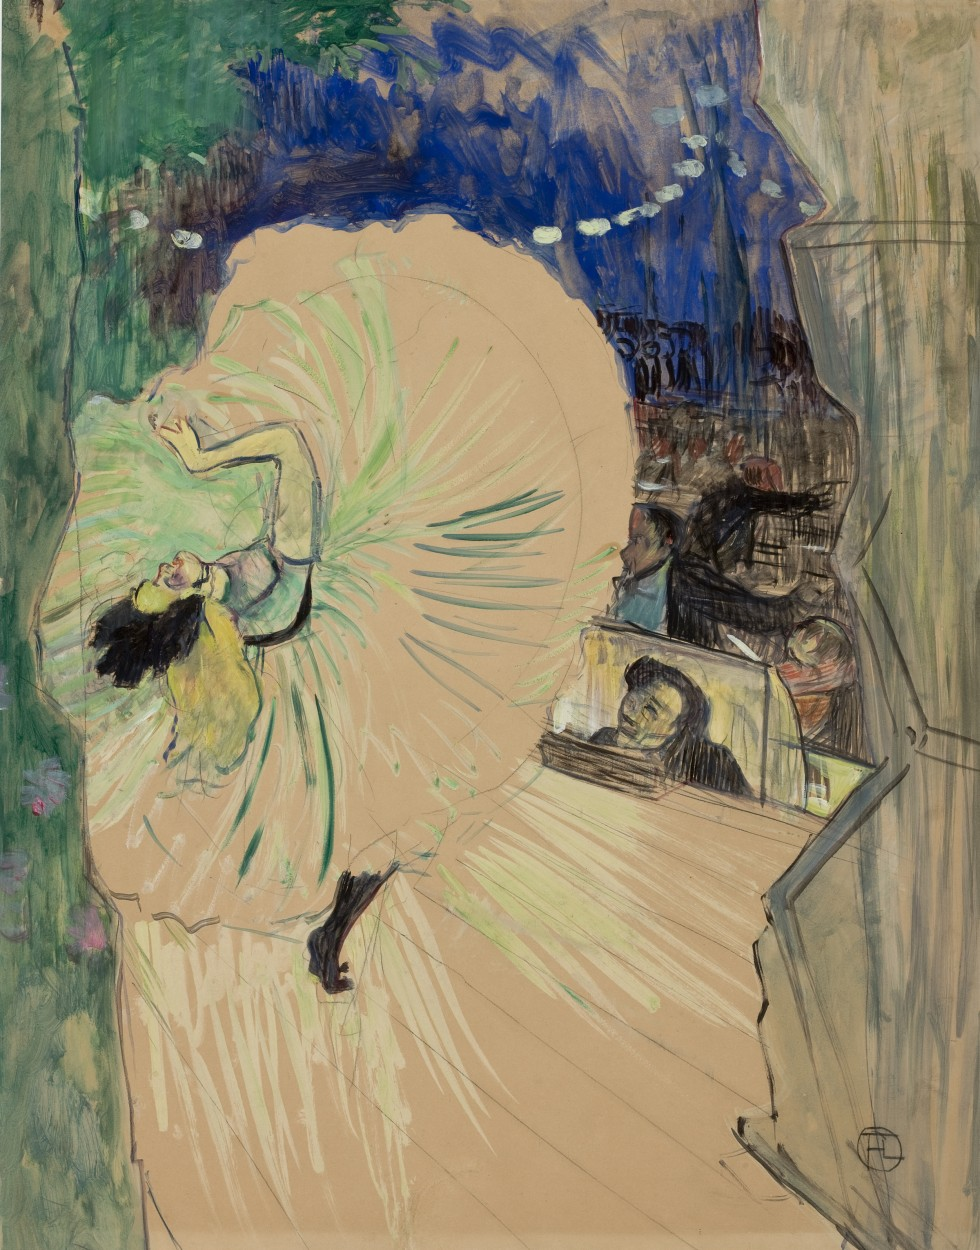 The Wheel by Henri de Toulouse-Lautrec via DailyArt app, your daily dose of art getdailyart.com